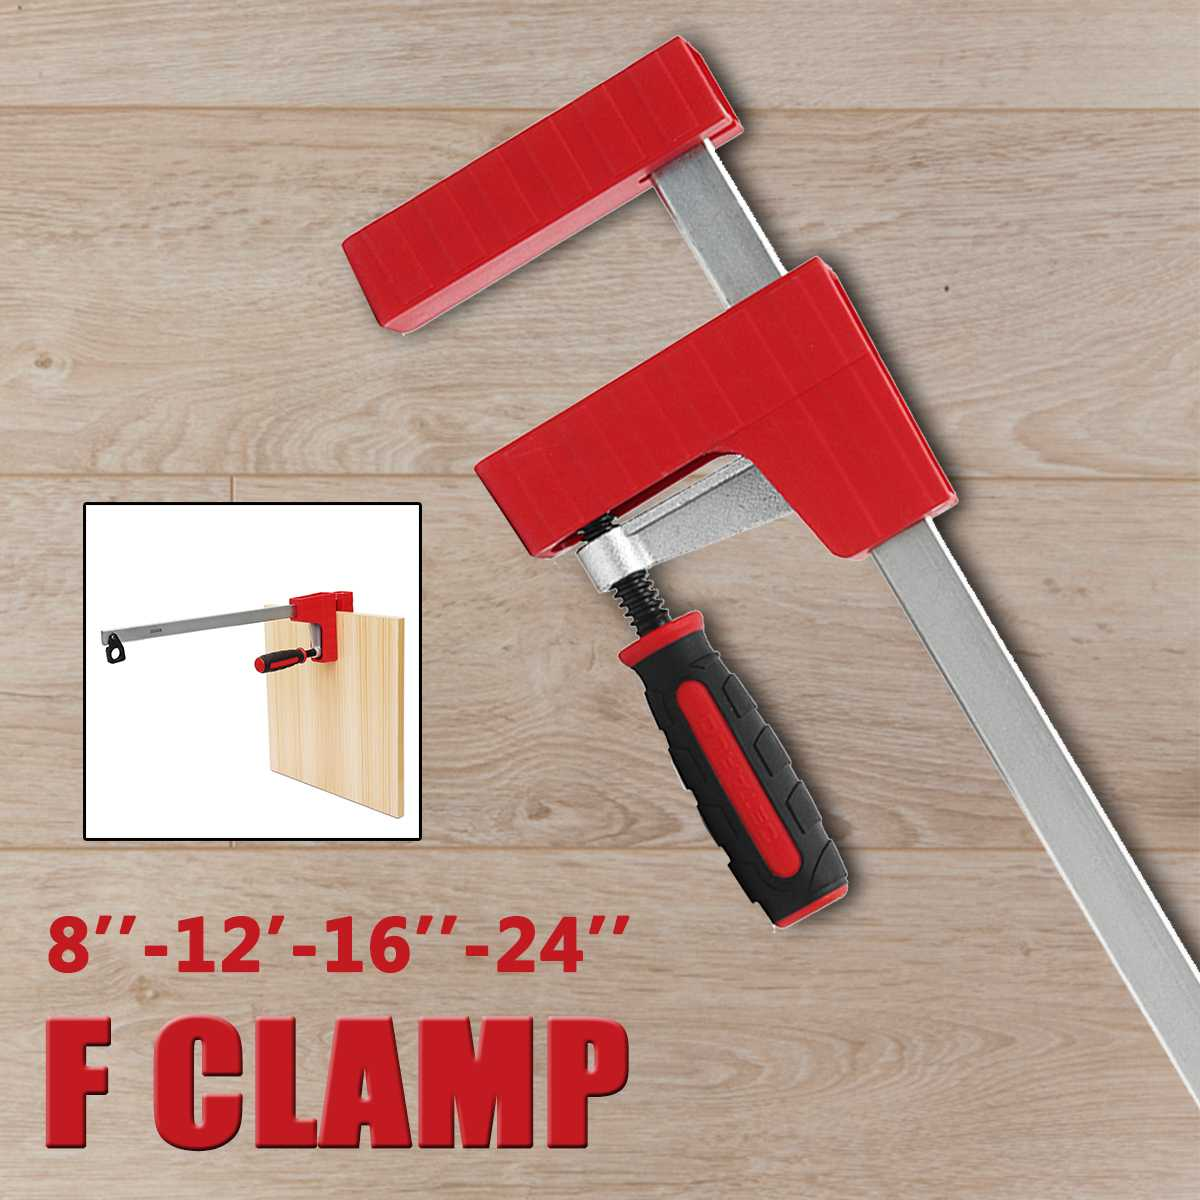 8/12/16/24 F Parallel Clamp Heavy   80mm Woodworking Tool Depth F Clamp Adjustable DIY Wood Clamping Carpenter Clamps Grip8/12/16/24 F Parallel Clamp Heavy   80mm Woodworking Tool Depth F Clamp Adjustable DIY Wood Clamping Carpenter Clamps Grip